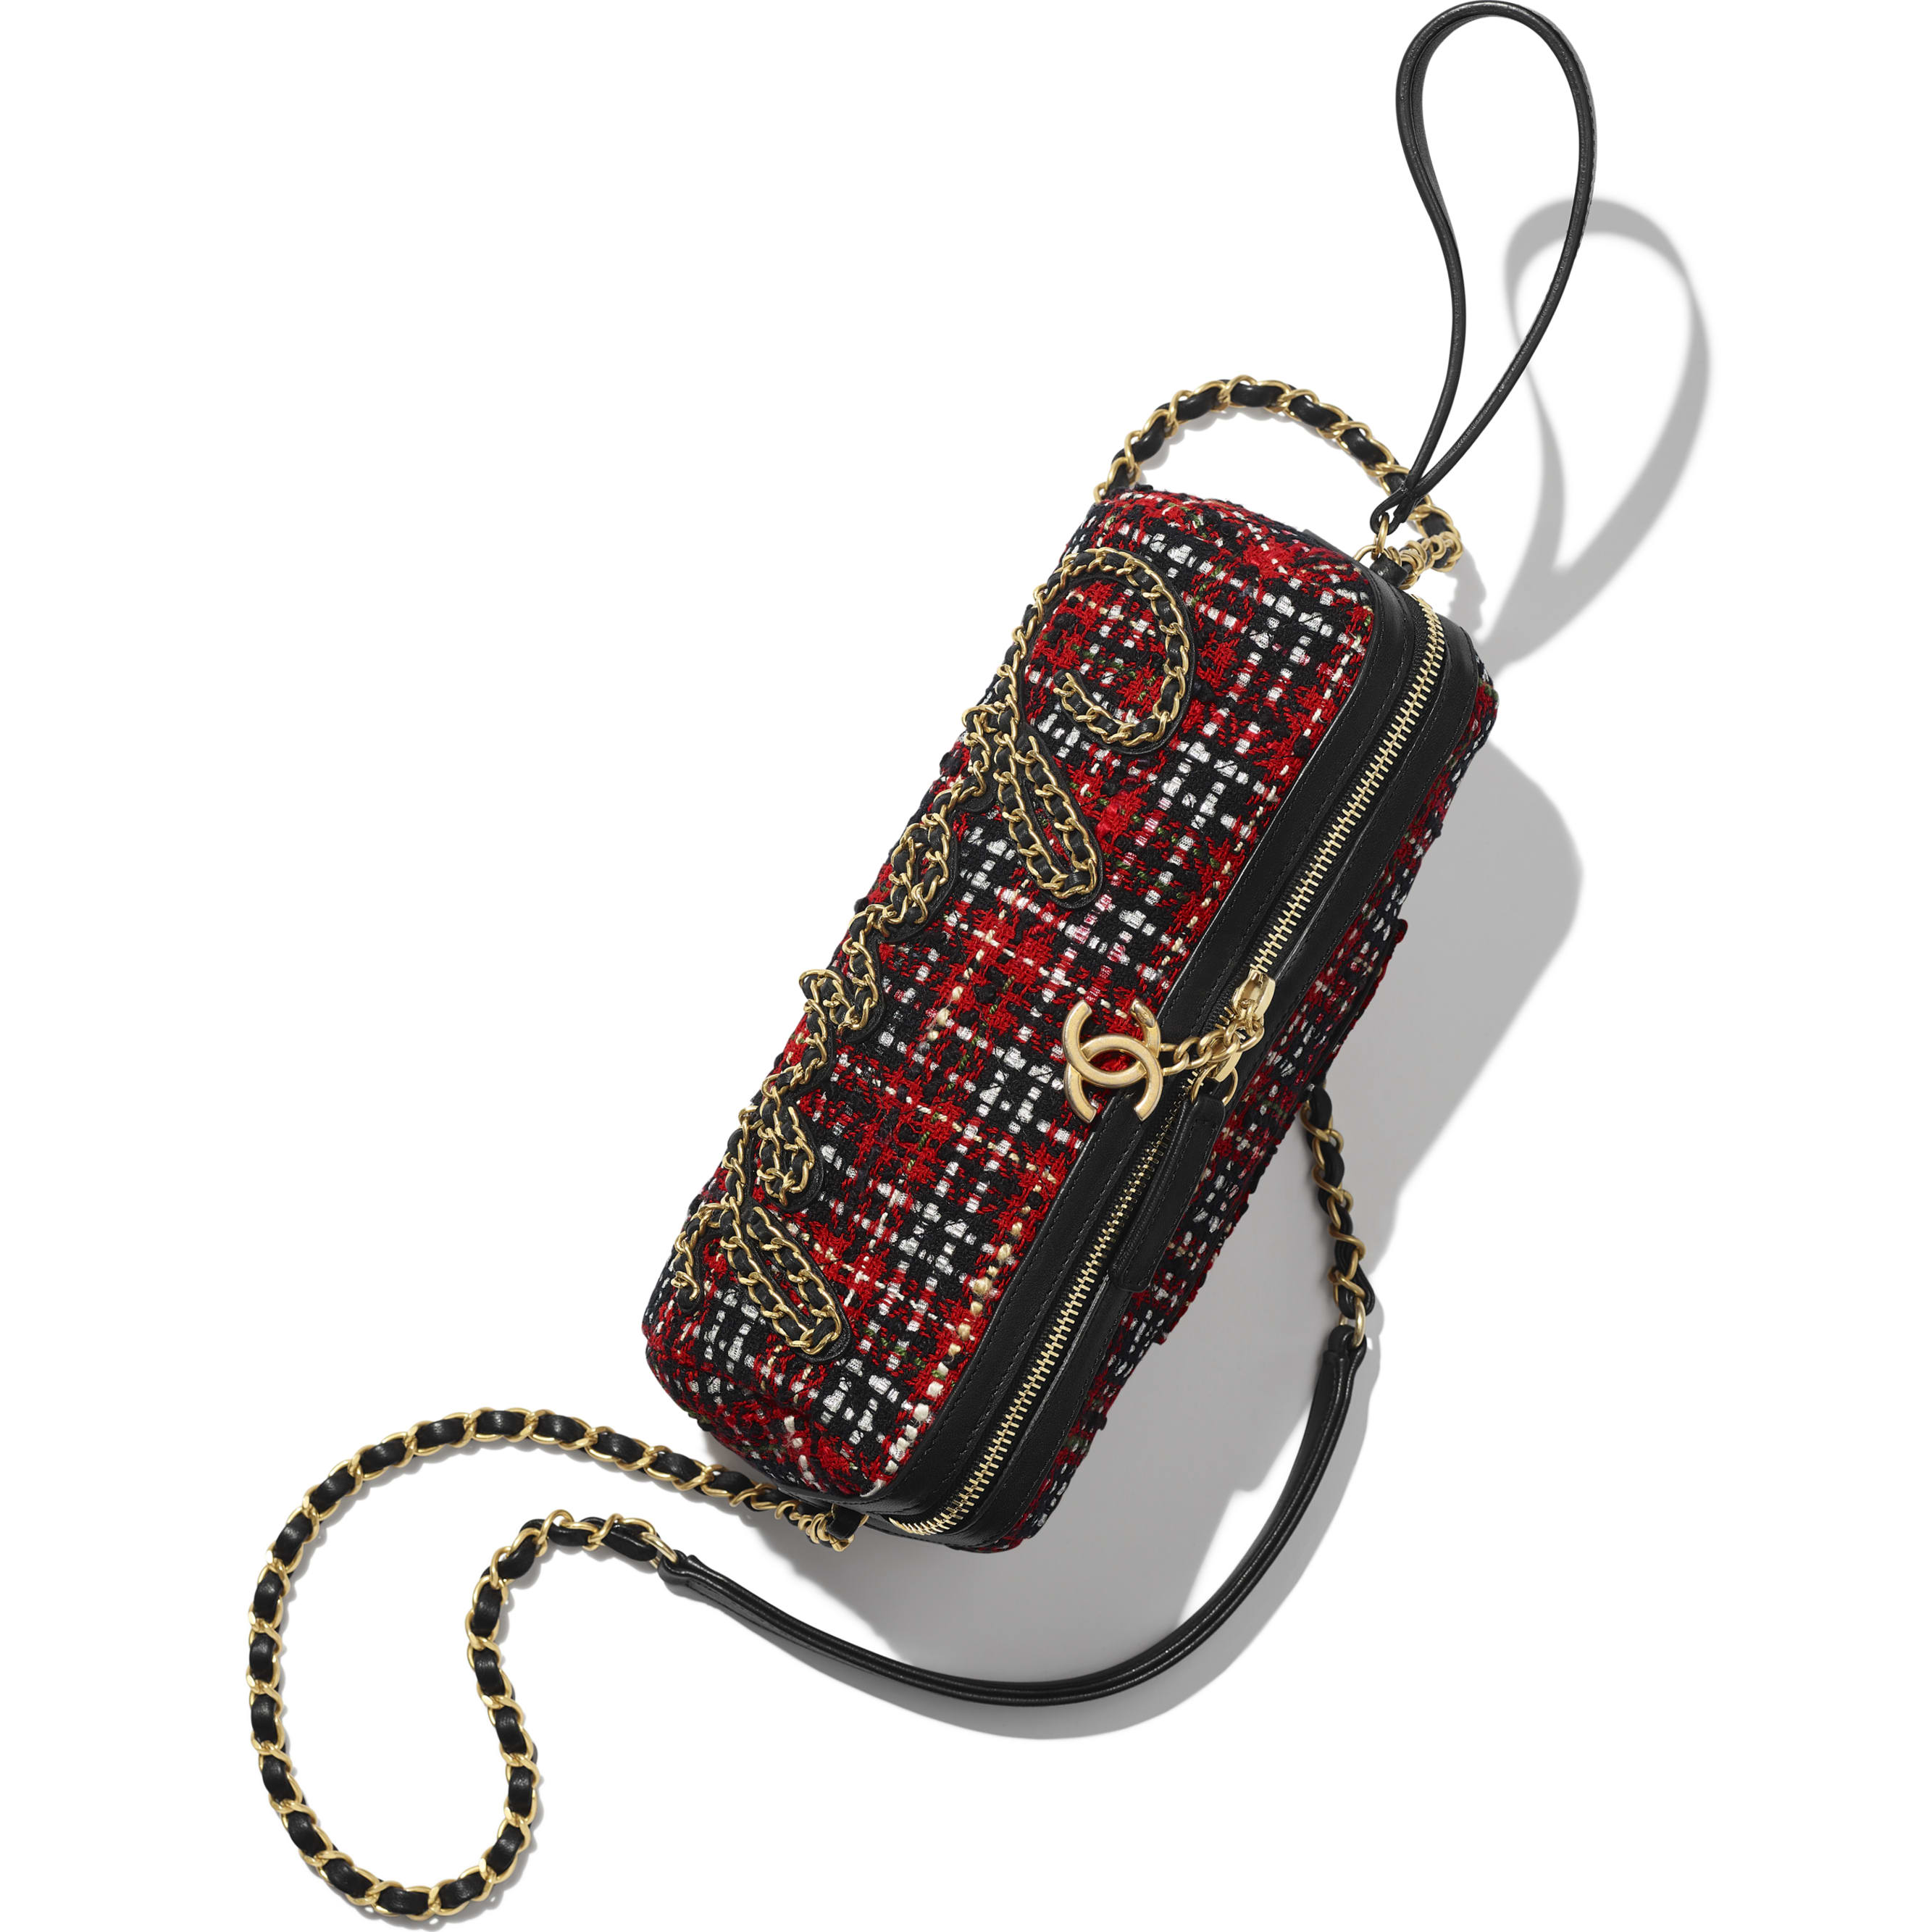 Bowling Bag - Red, Black, White & Green - Tweed, Calfskin & Gold-Tone Metal - CHANEL - Extra view - see standard sized version